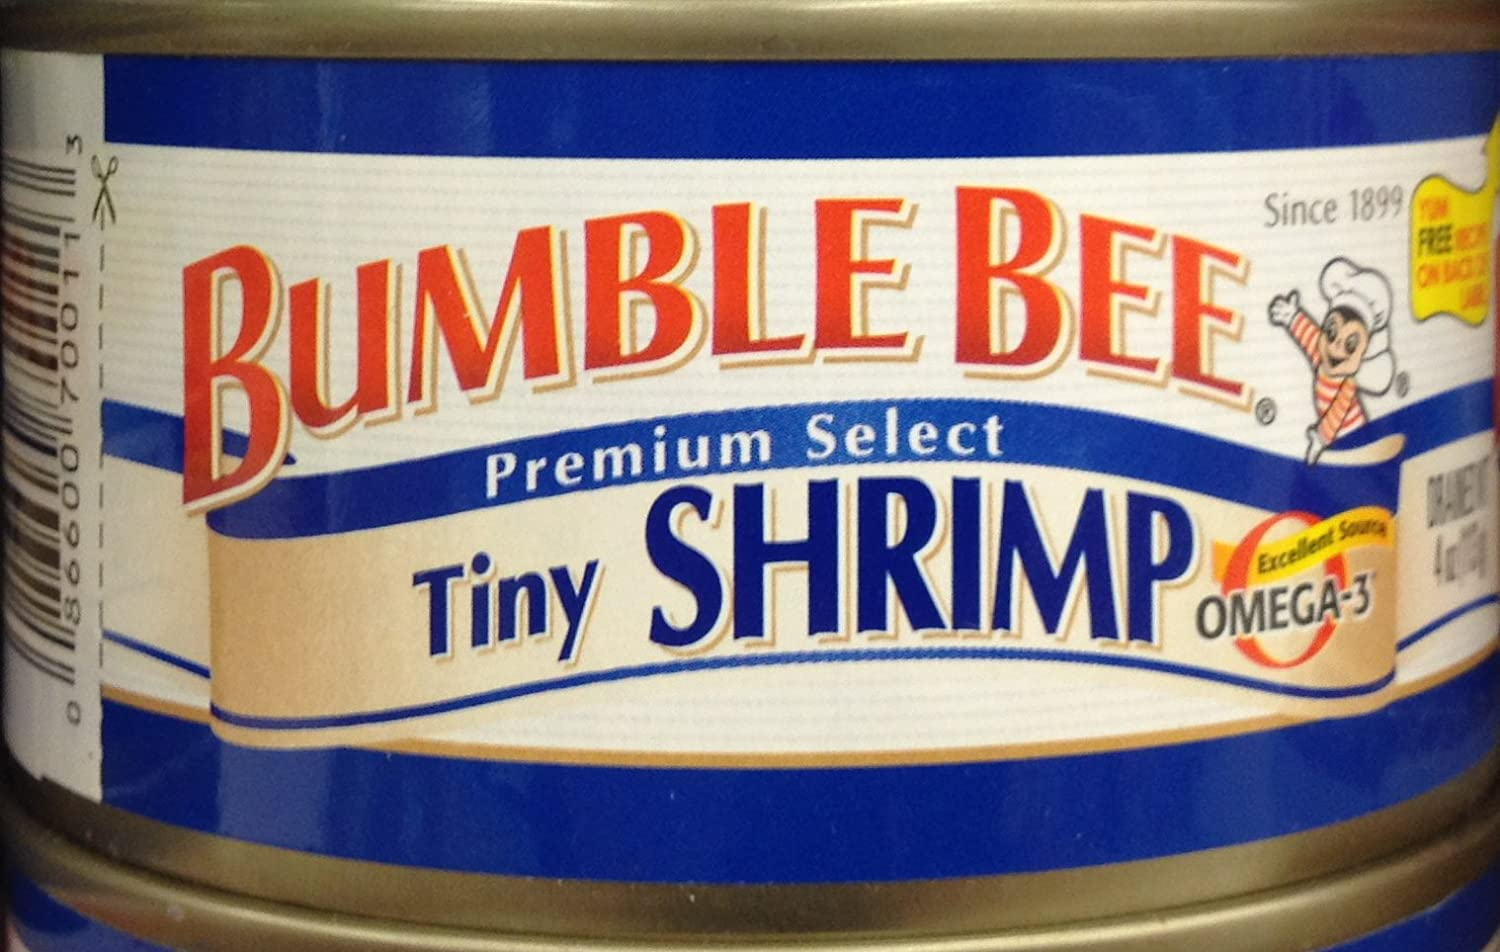 BUMBLE BEE Premium Select New Shipping Free TINY Cans Today's only 2 4oz. SHRIMP